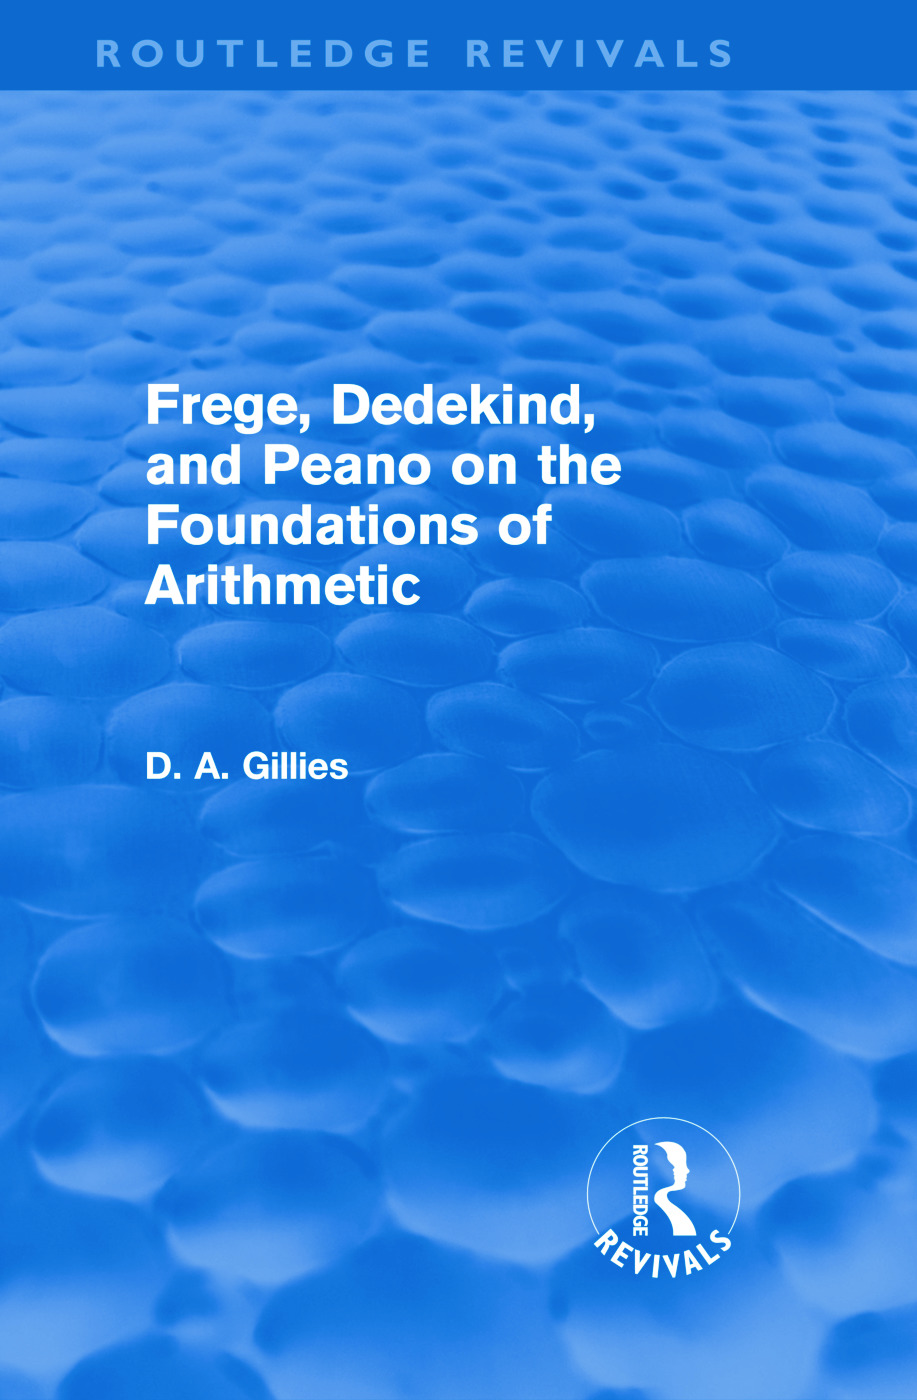 Frege, Dedekind, and Peano on the Foundations of Arithmetic (Routledge Revivals) (Hardback) book cover